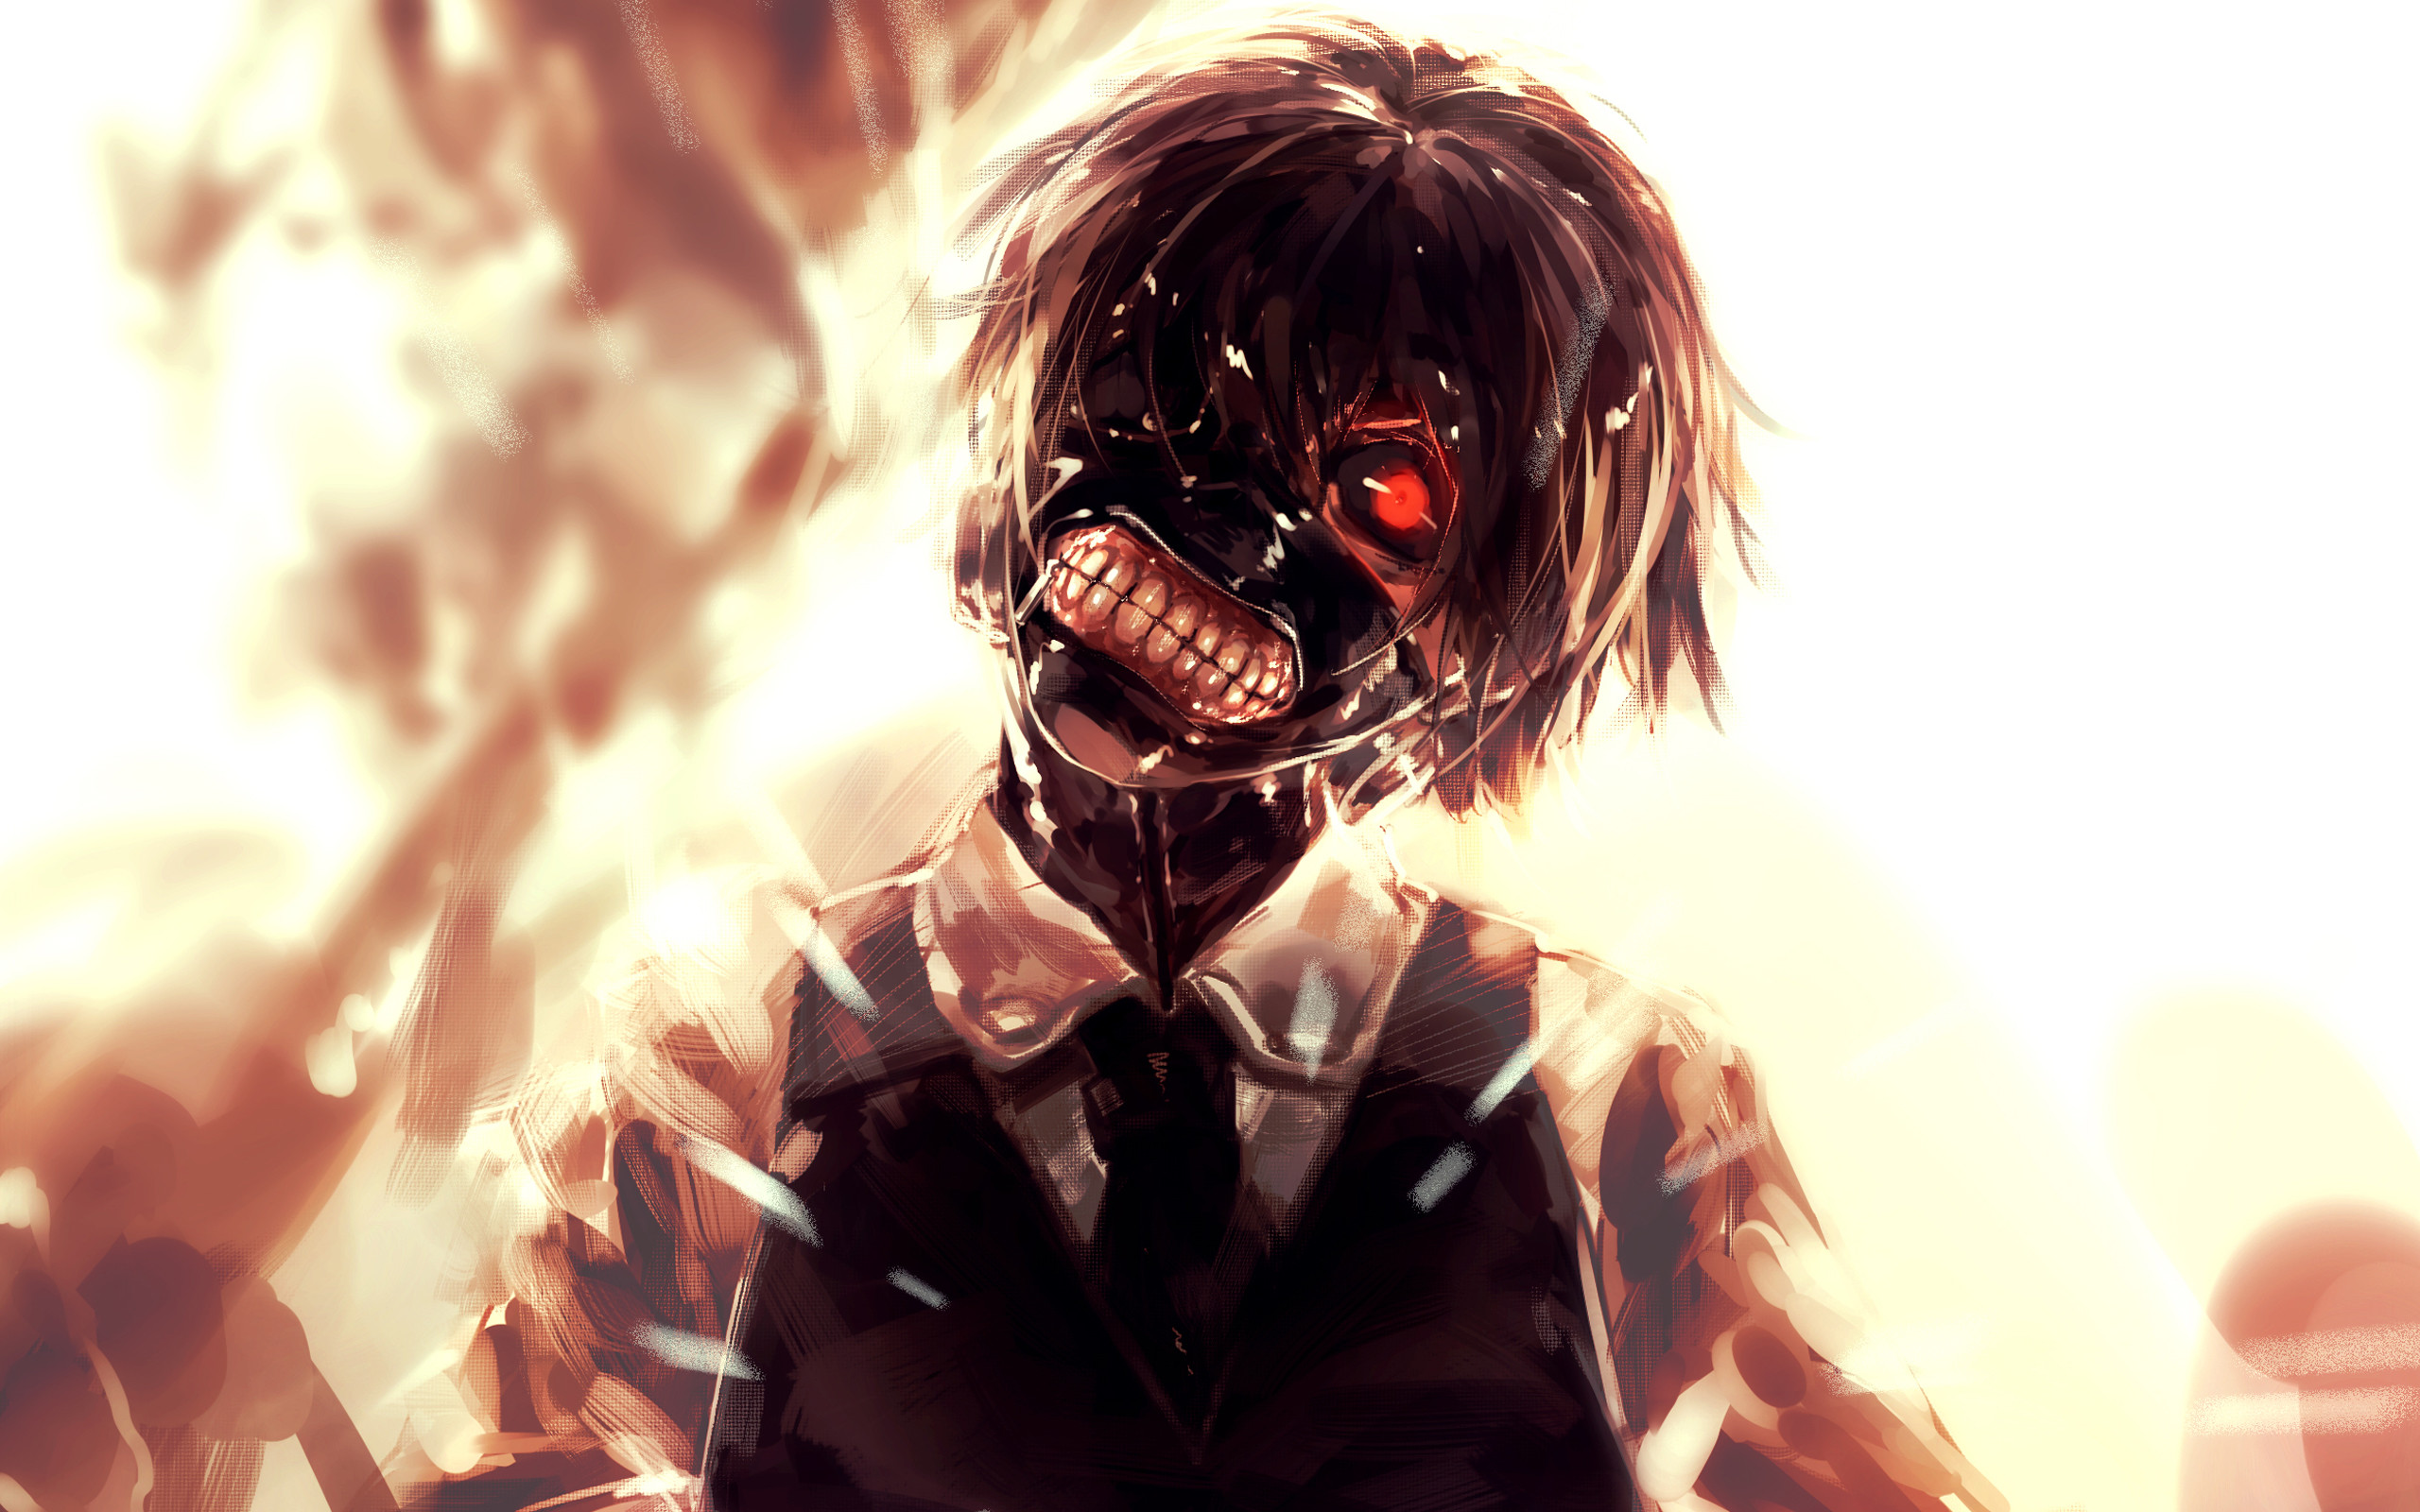 /w/ – Anime/Wallpapers » Thread #1884170